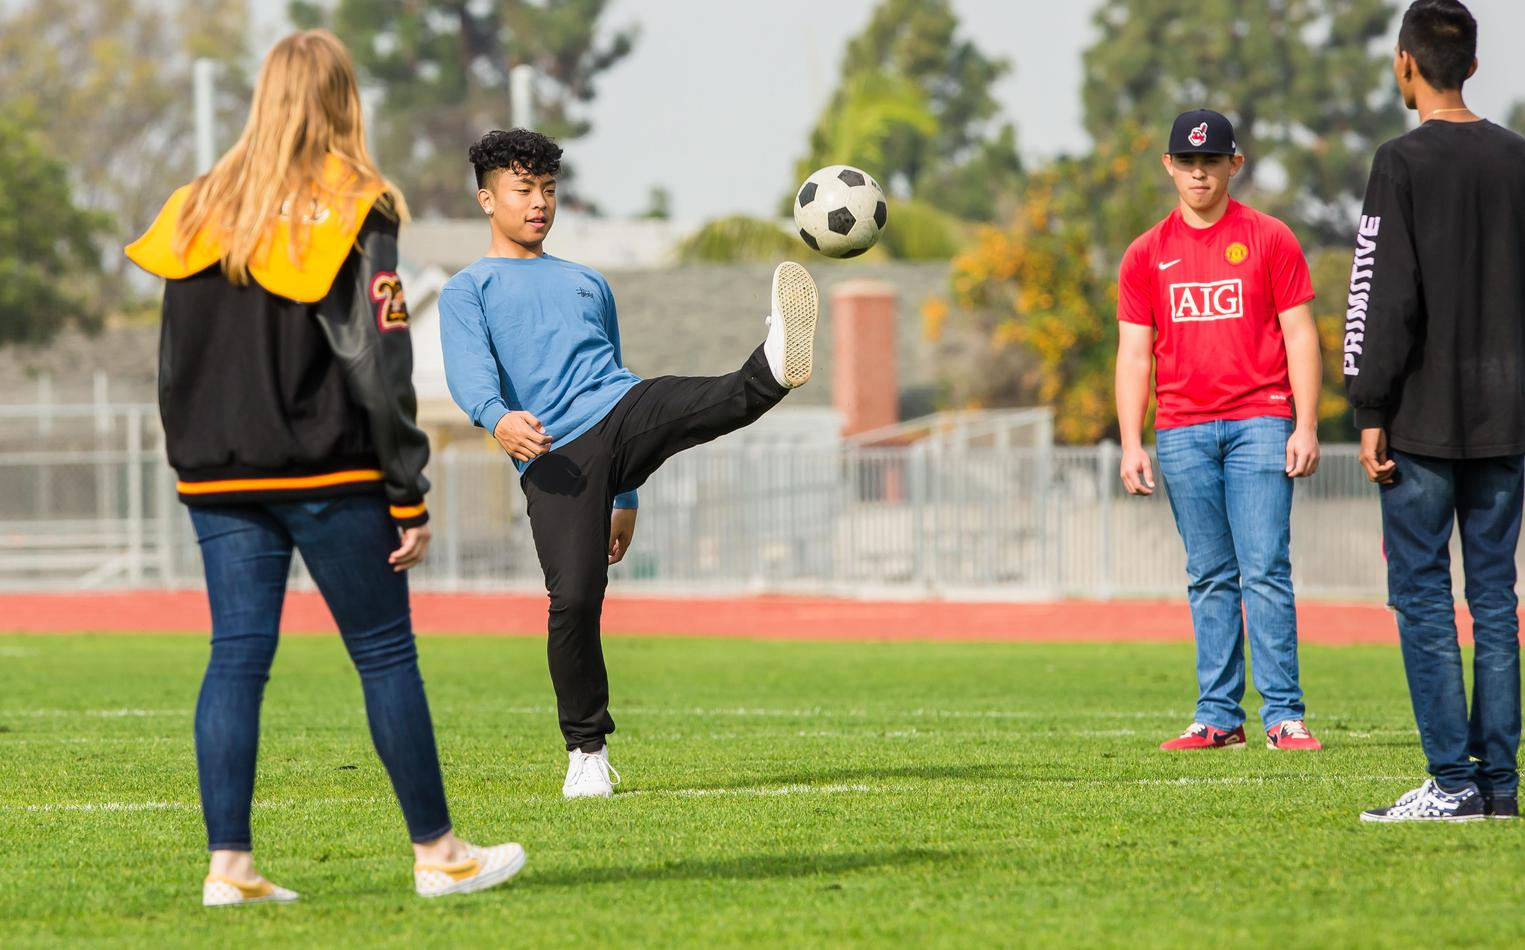 High school students on soccer field kicking around ball.